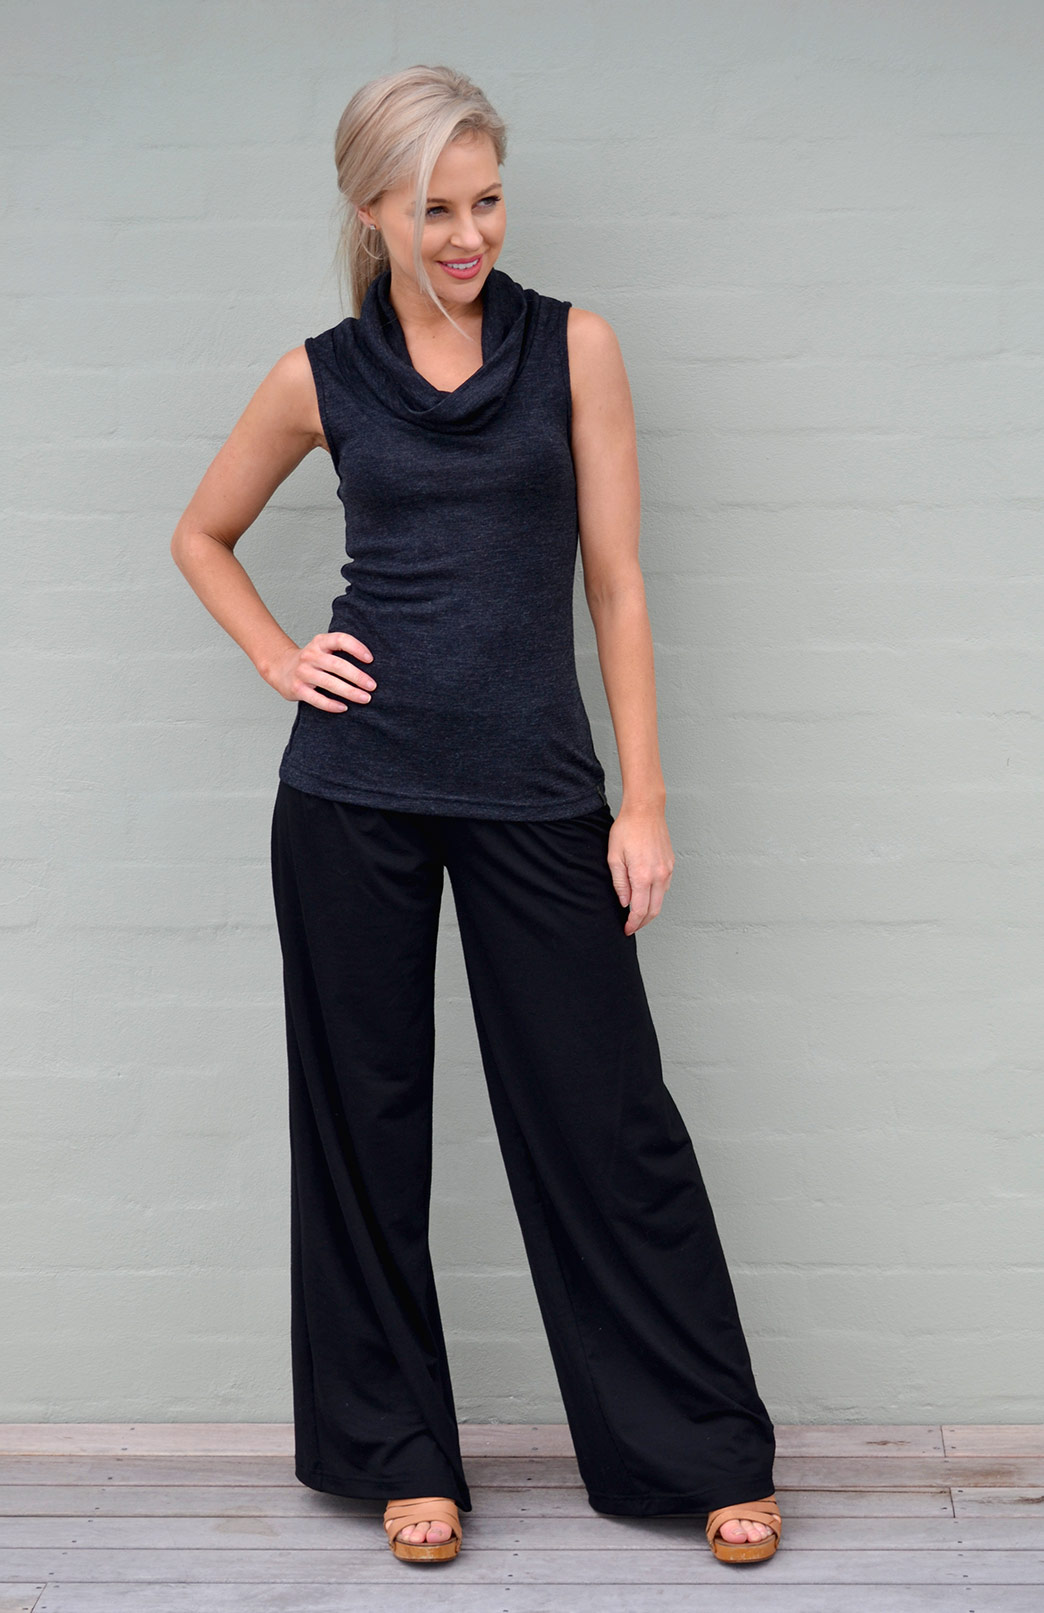 Cowl Neck Top - Sleeveless - Women's Charcoal Marl Sleeveless Trans-Seasonal Wool Top - Smitten Merino Tasmania Australia